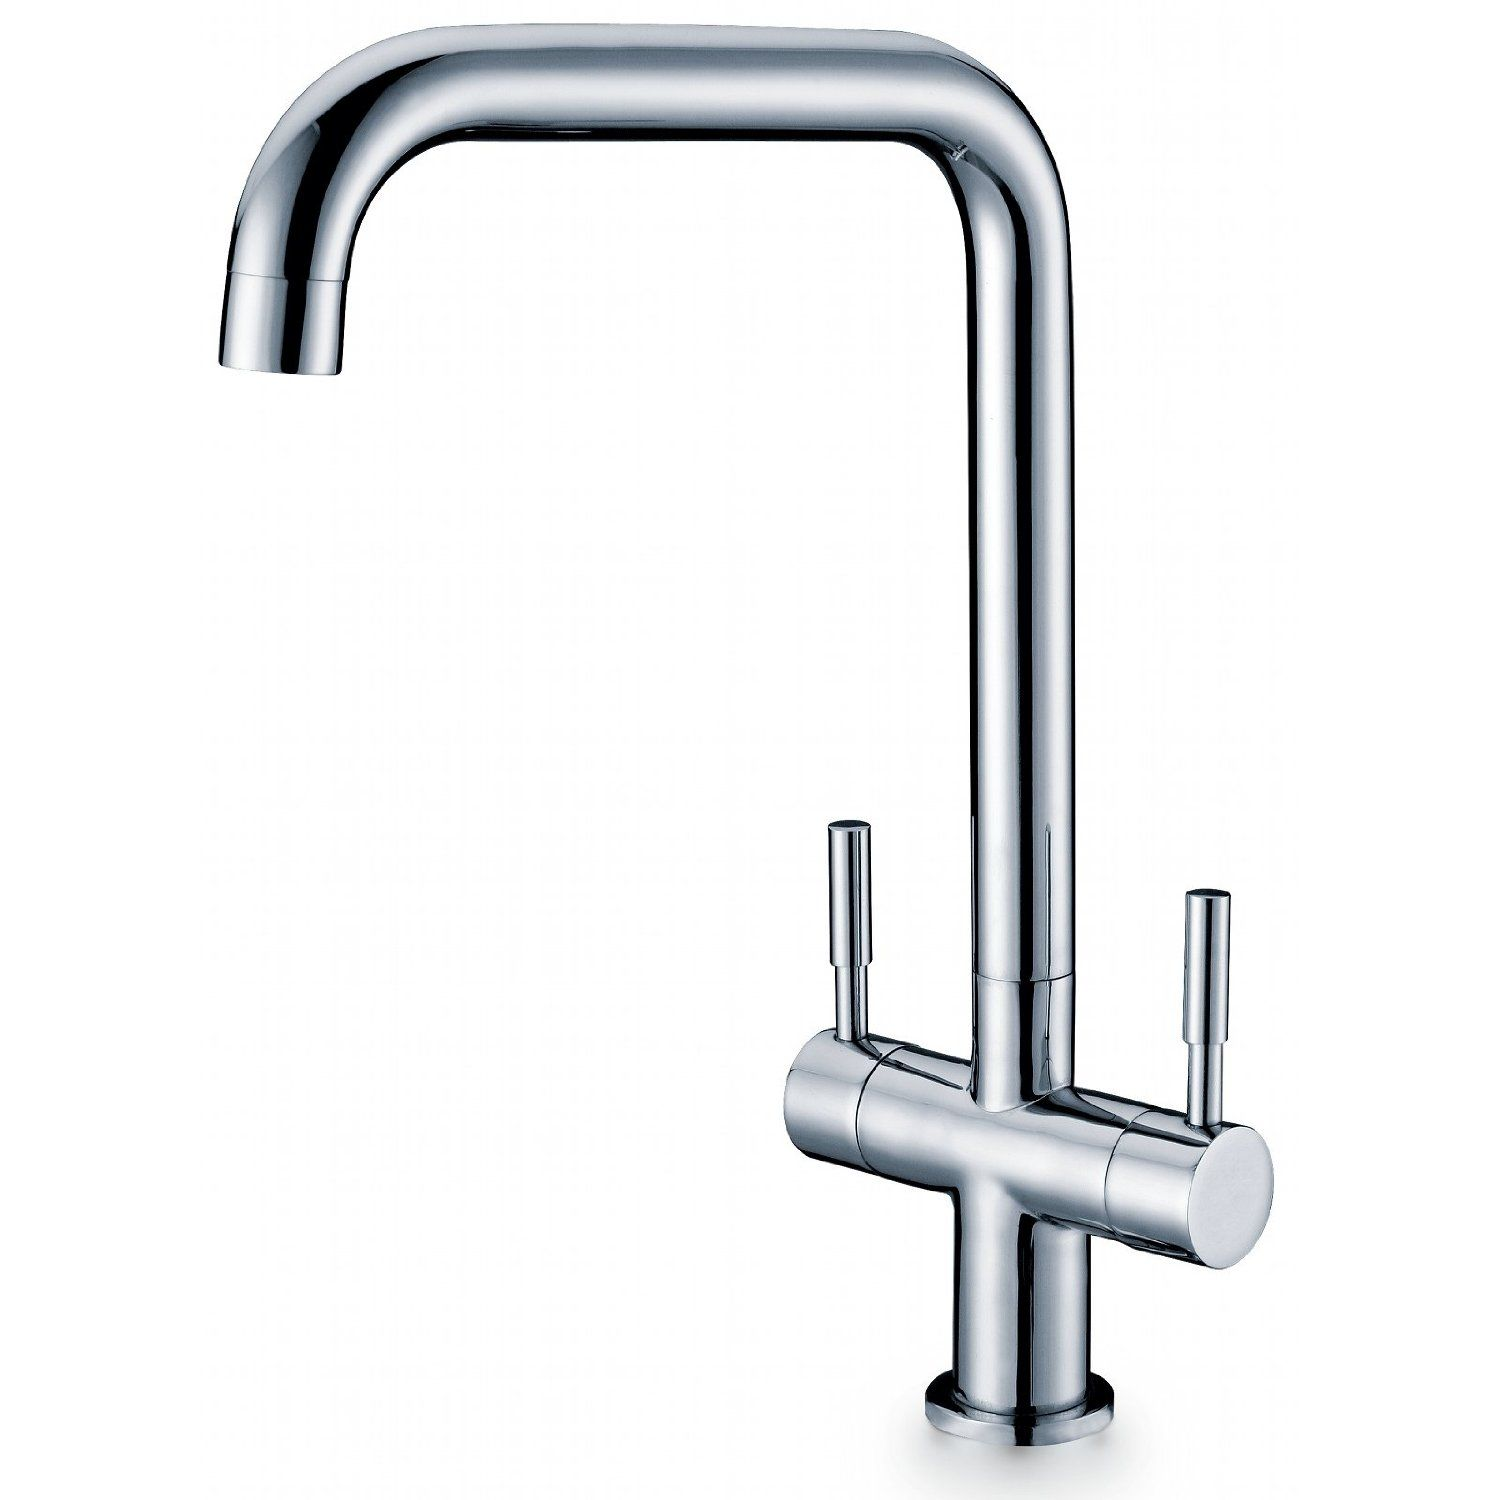 Franke Kitchen Faucets Tectoniter Sinks Are Strong And Durable Yet Amazingly Lightweight